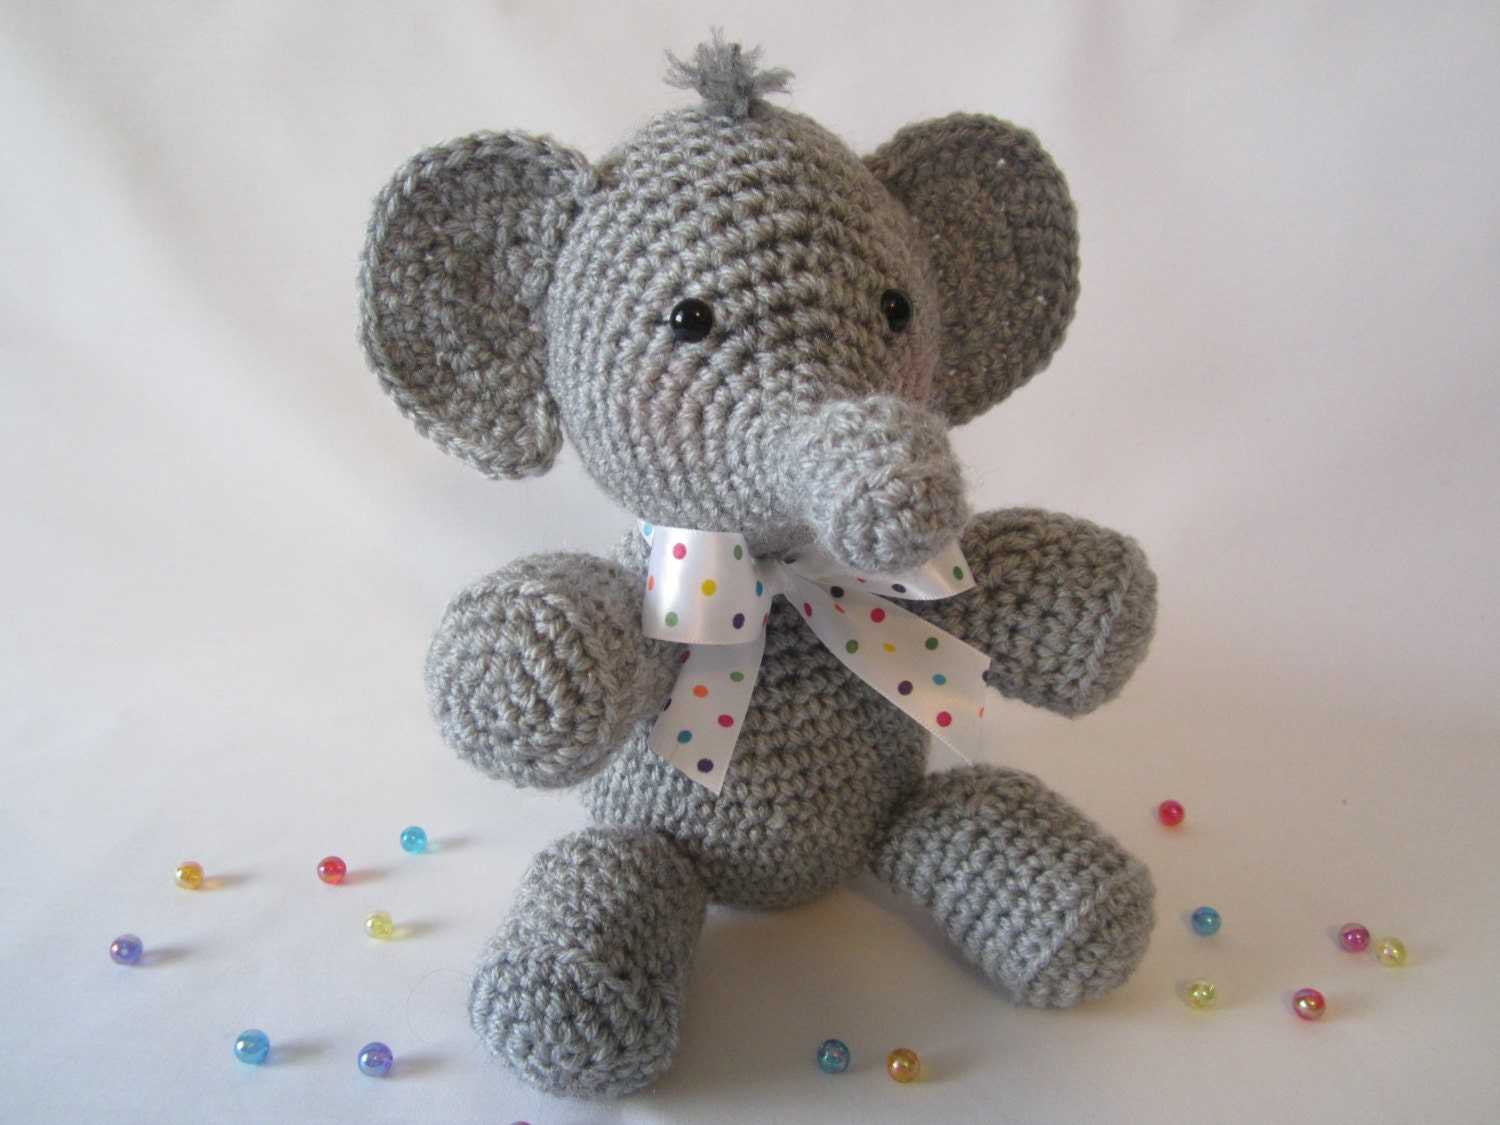 Free Crochet Pattern Stuffed Animals : Elephant Stuffed Animal Crochet Pattern 2016 Car Release ...